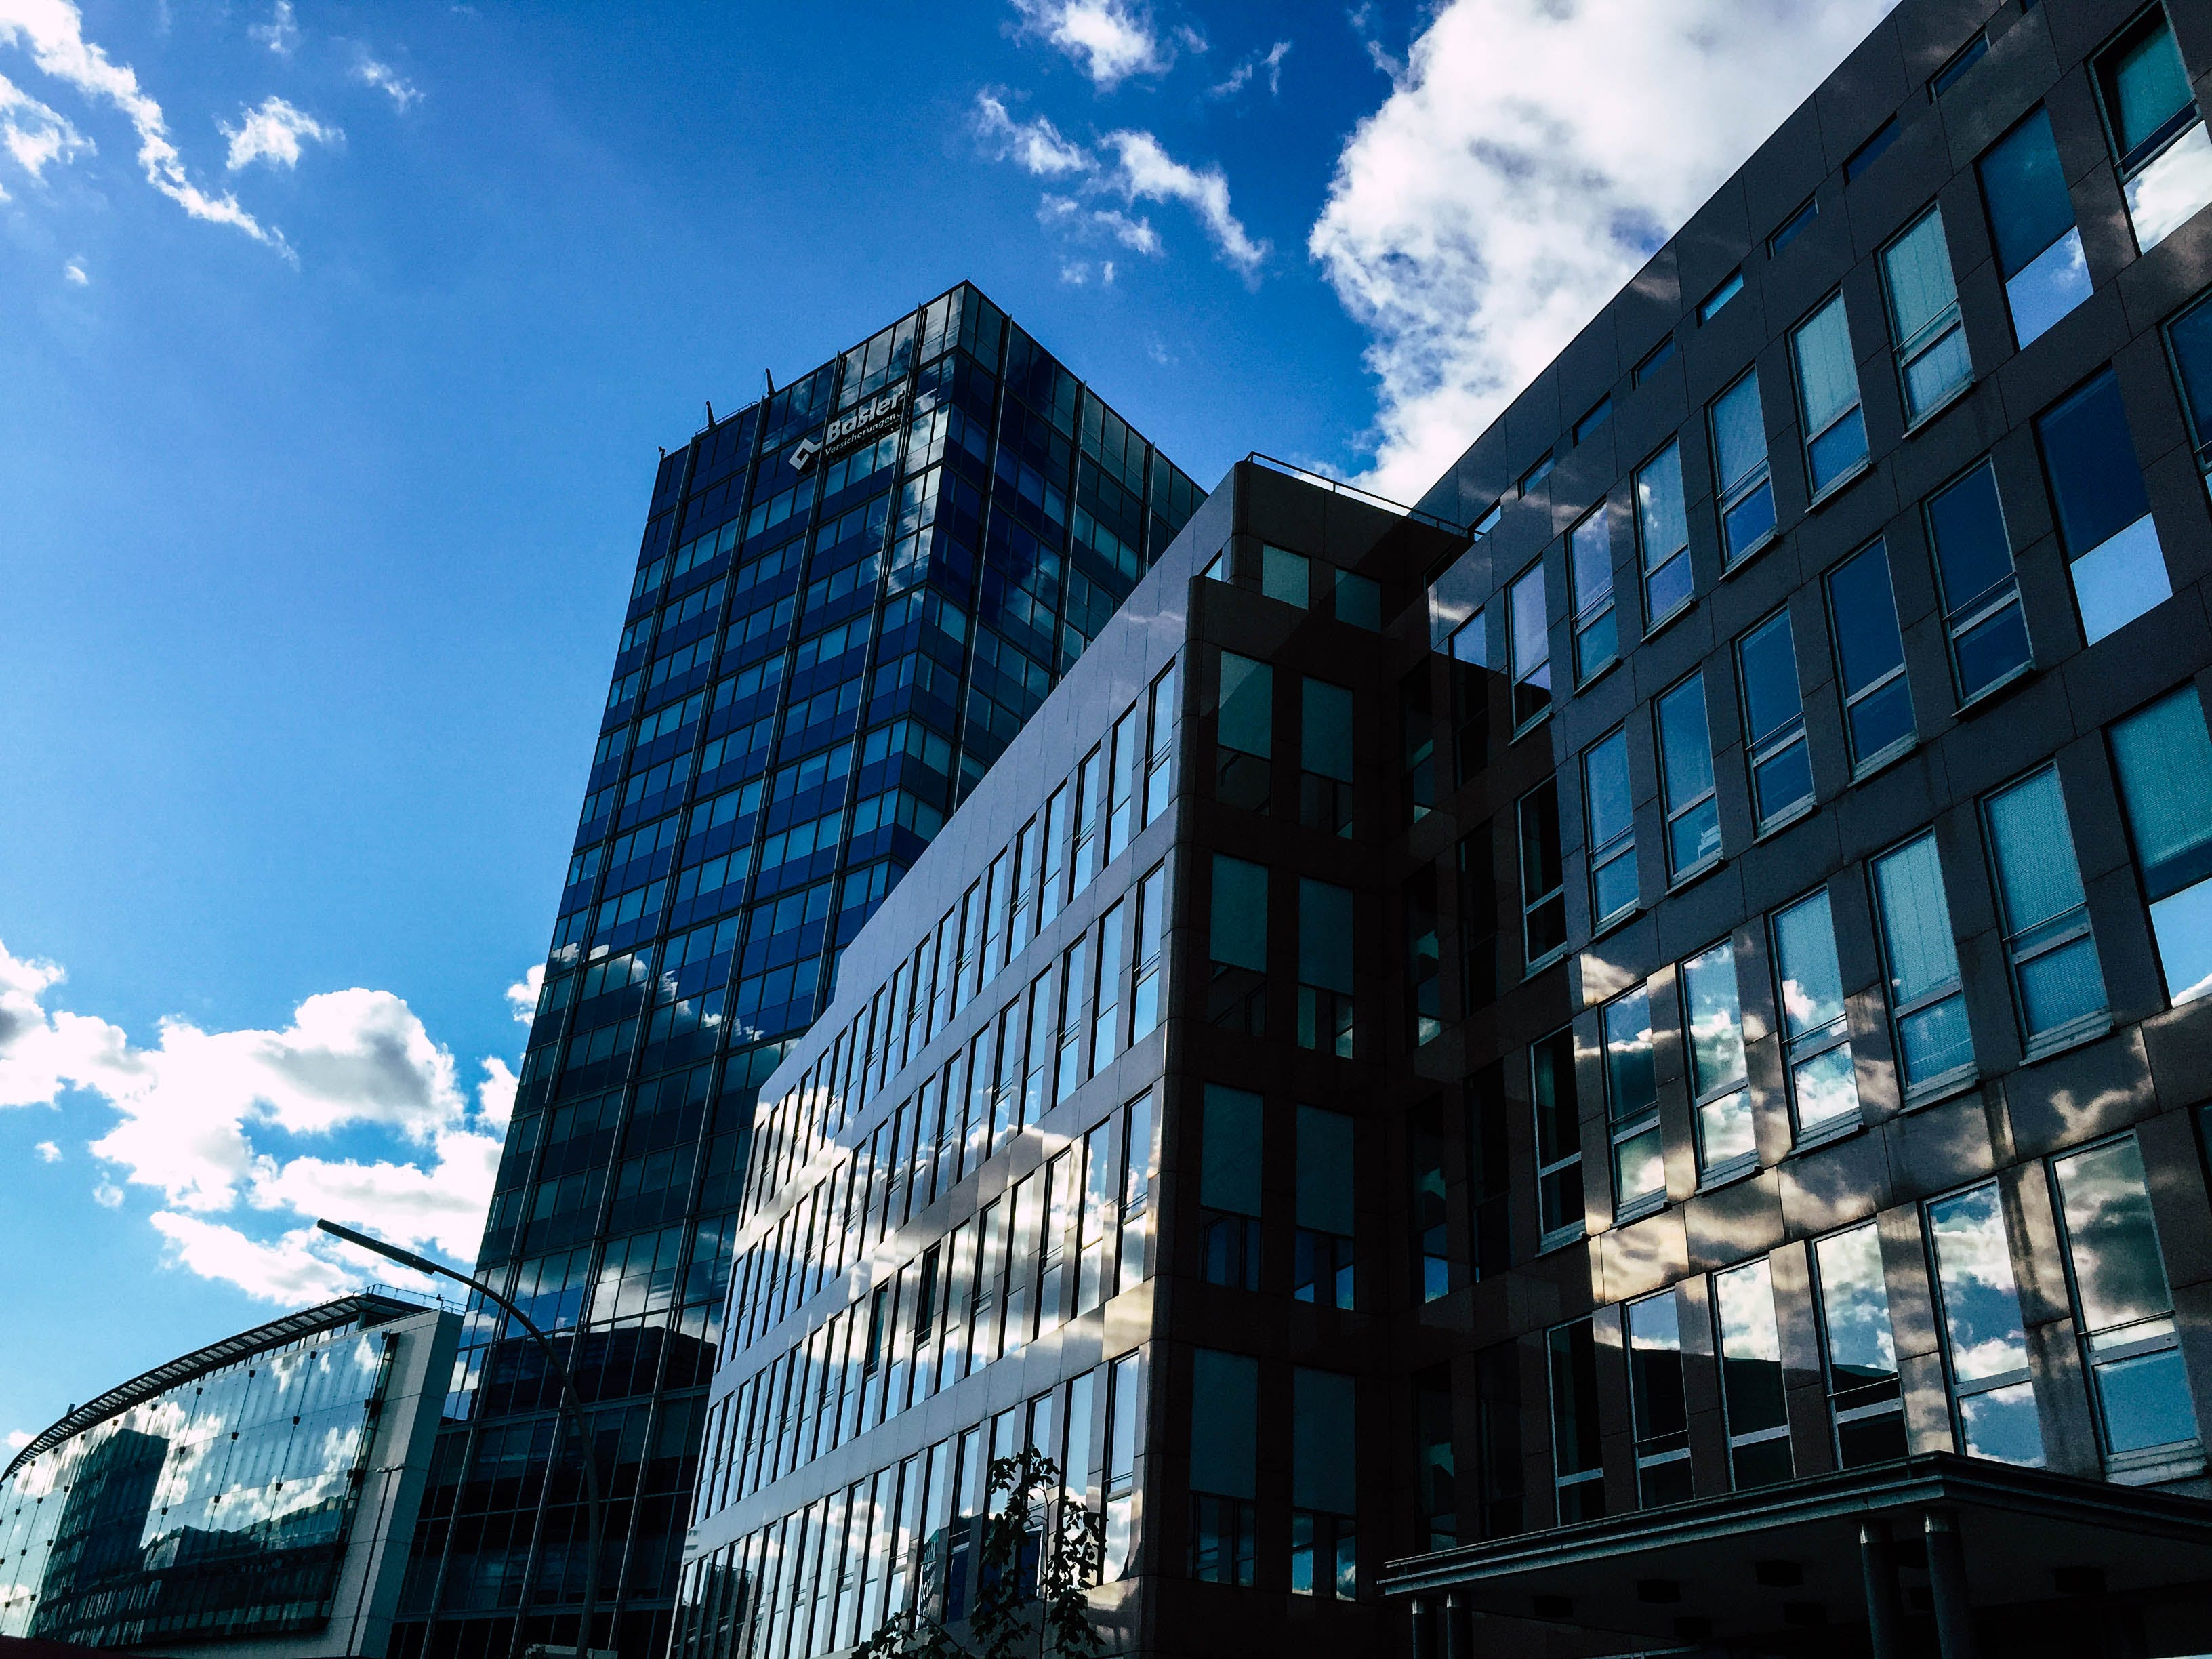 Low-angle Photography of Curtain Wall Building Taken Under White Clouds and Blue Sky